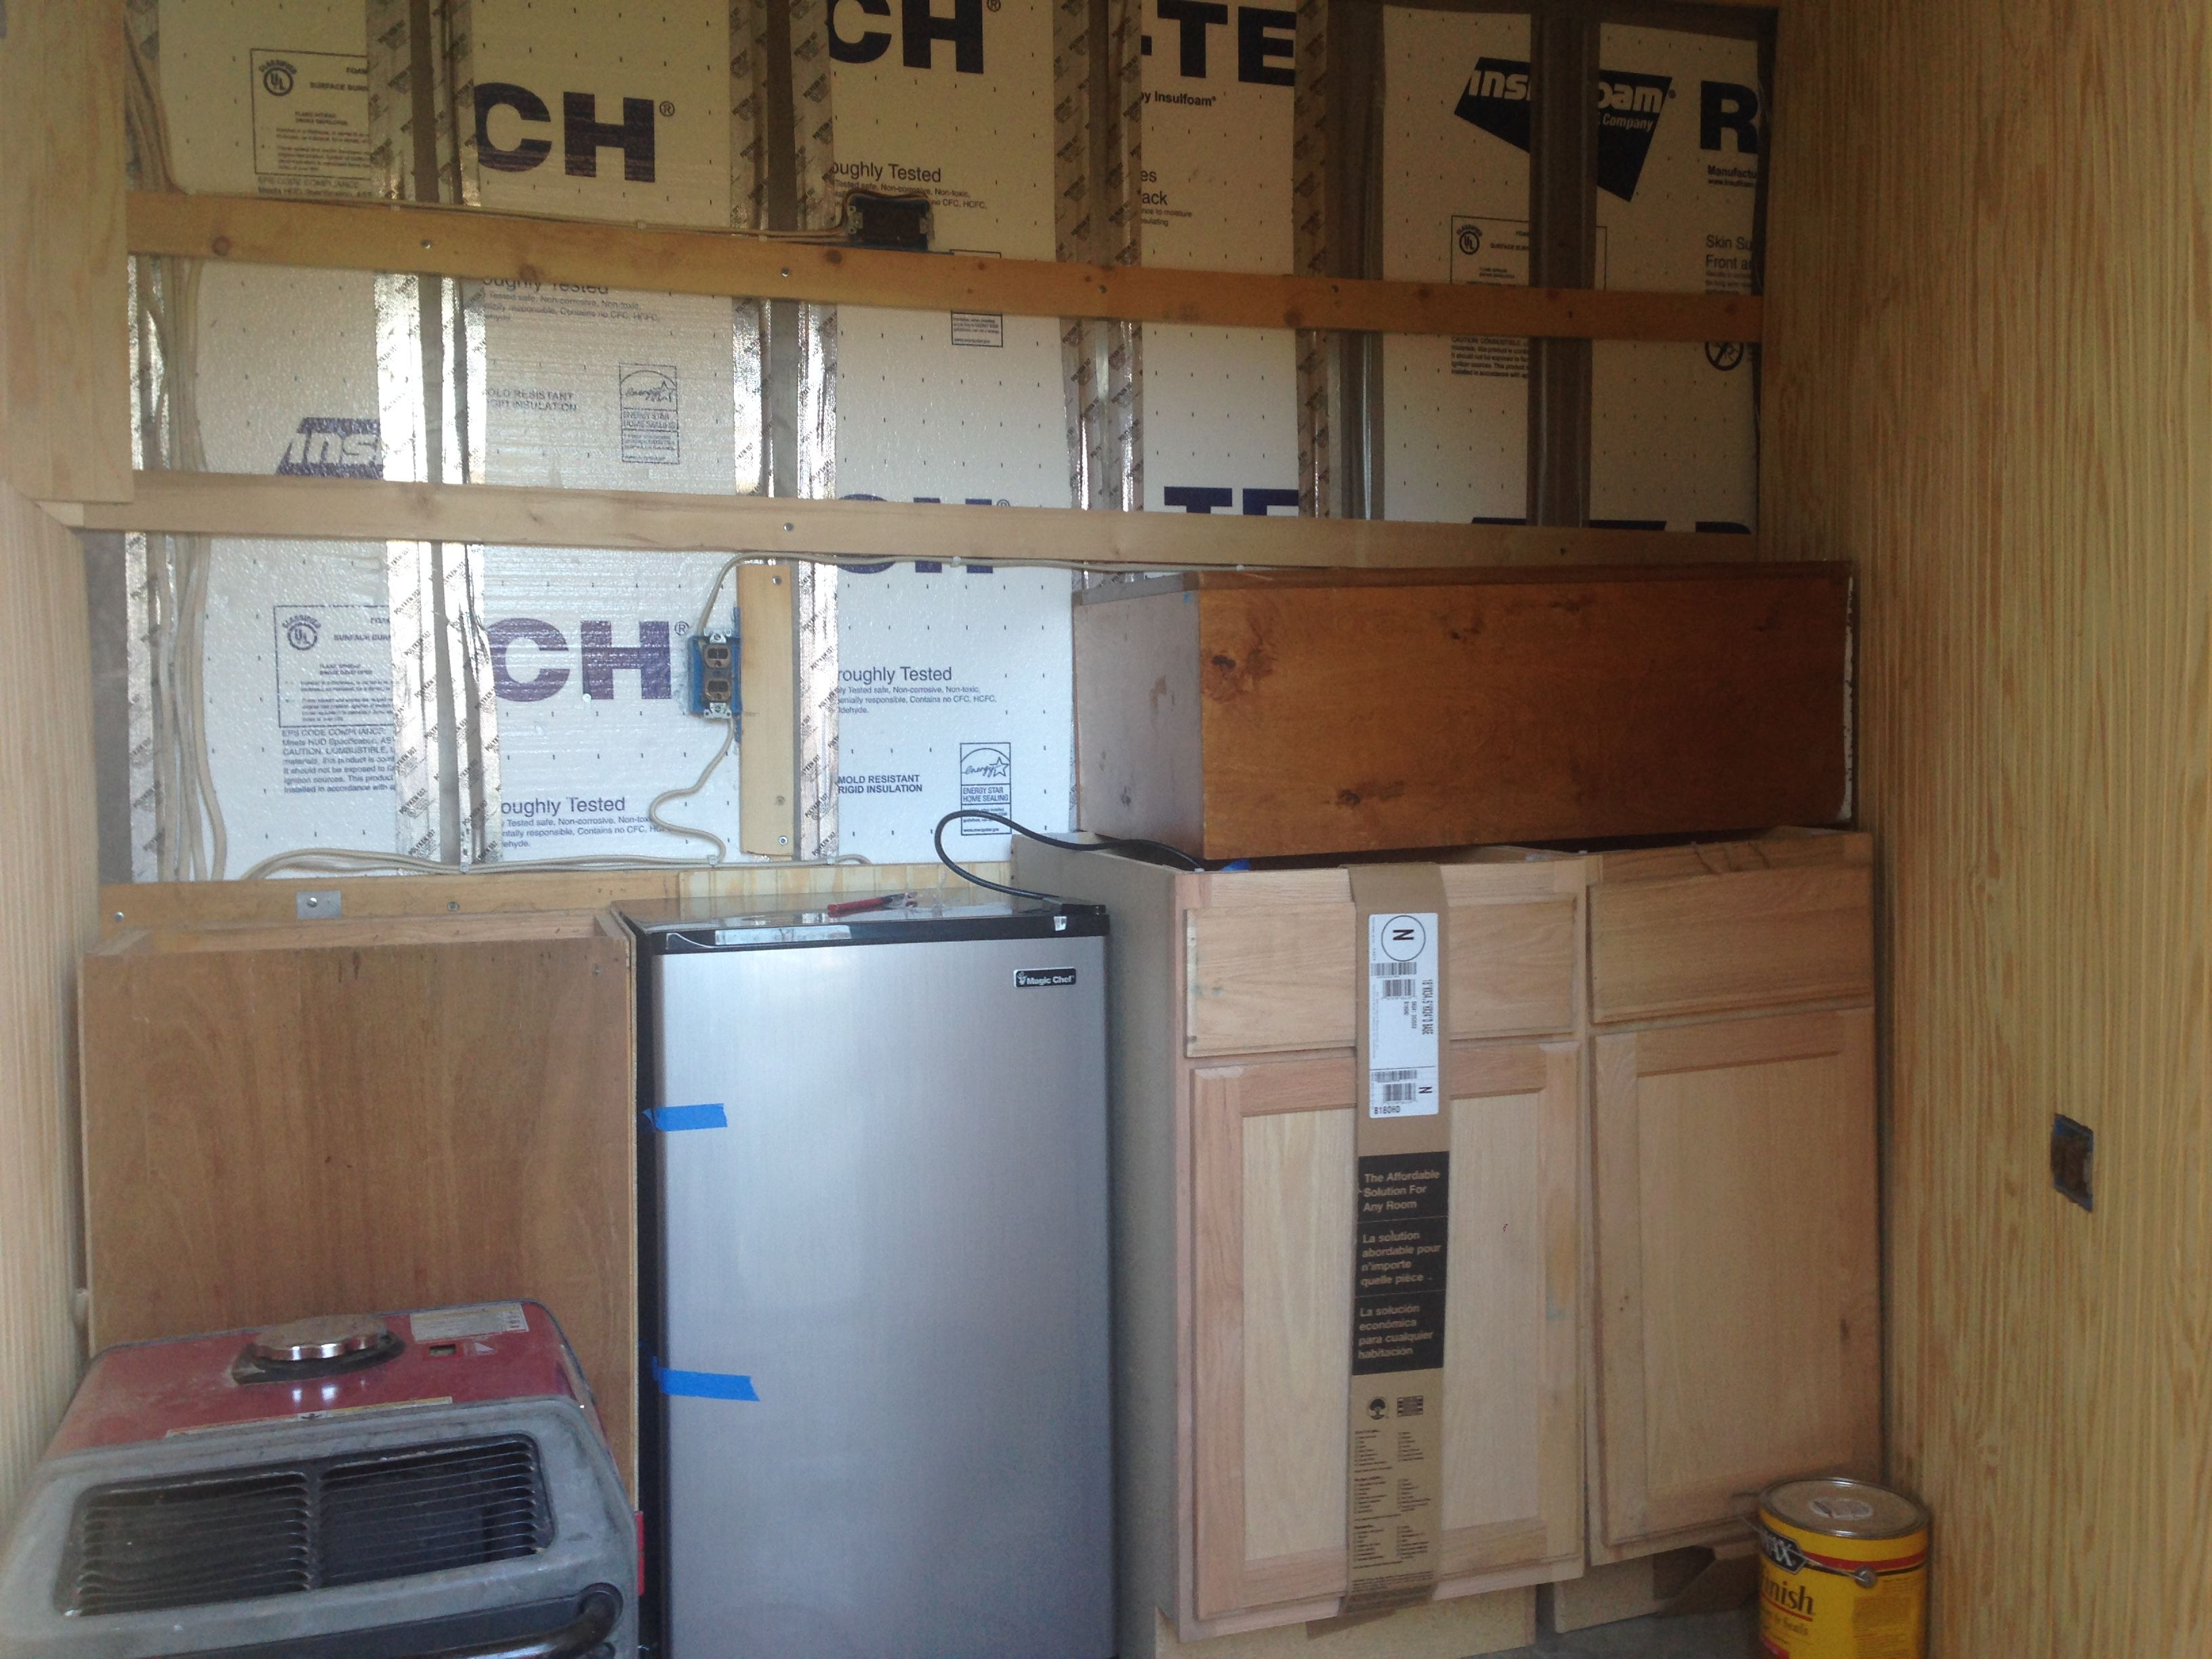 Bought The Fridge On Craigslist Love A Bargain The Darker Cabinets Bought At Habitat For Humanity Are Upper Cabine Trailer Remodel Trailer Diy Stock Trailer